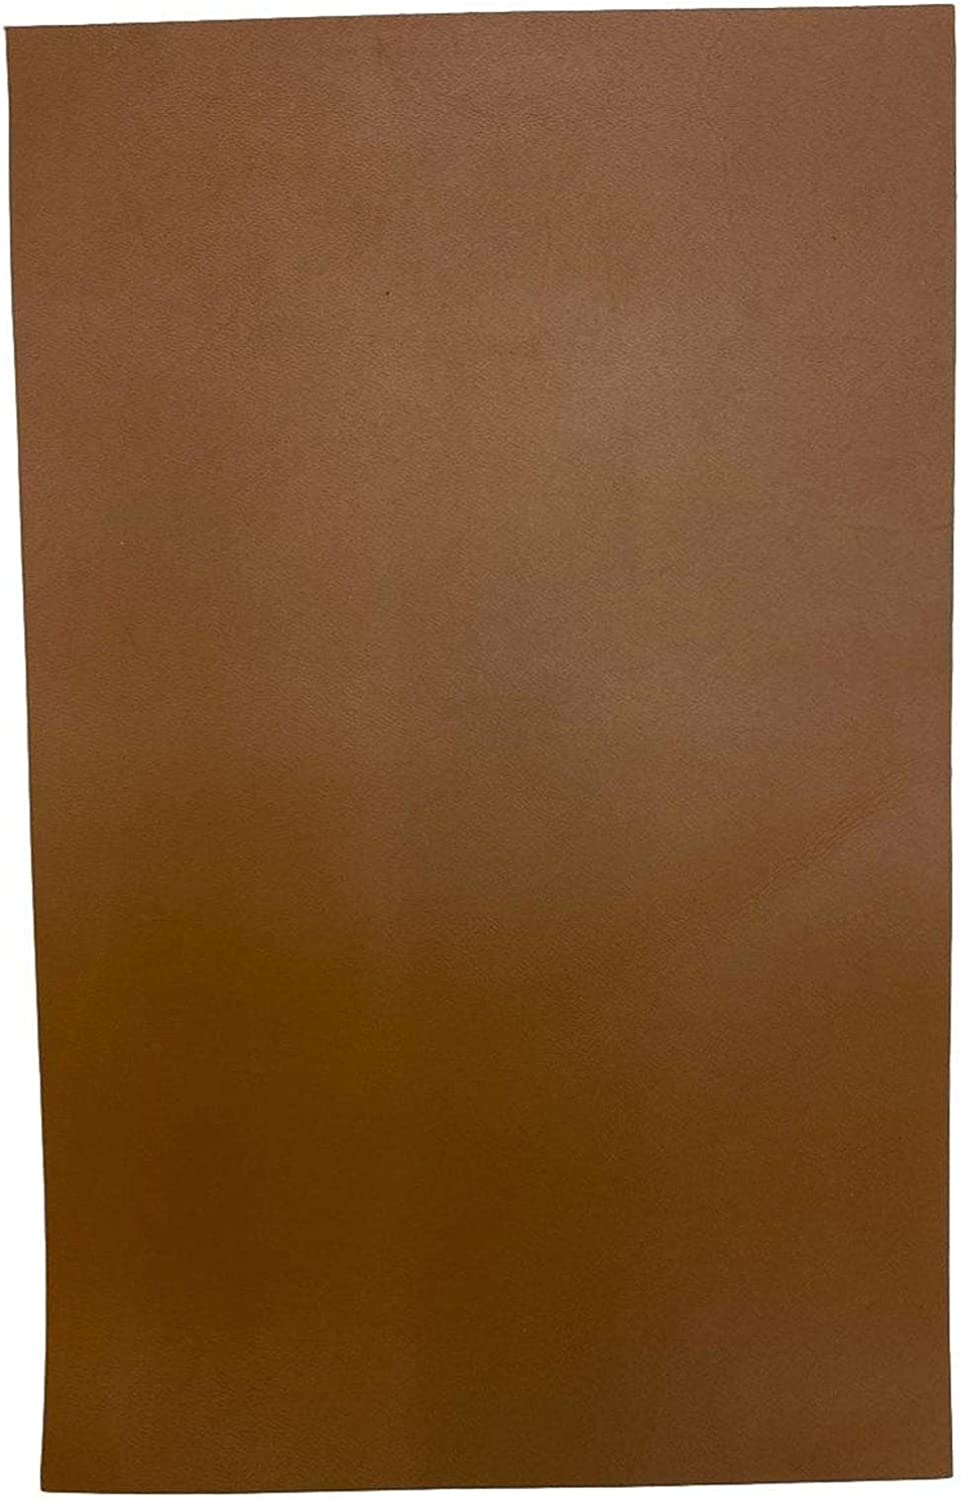 Italian Calf Cow Leather Tan 7.5 x 12 Pre-Cut Leather Pieces